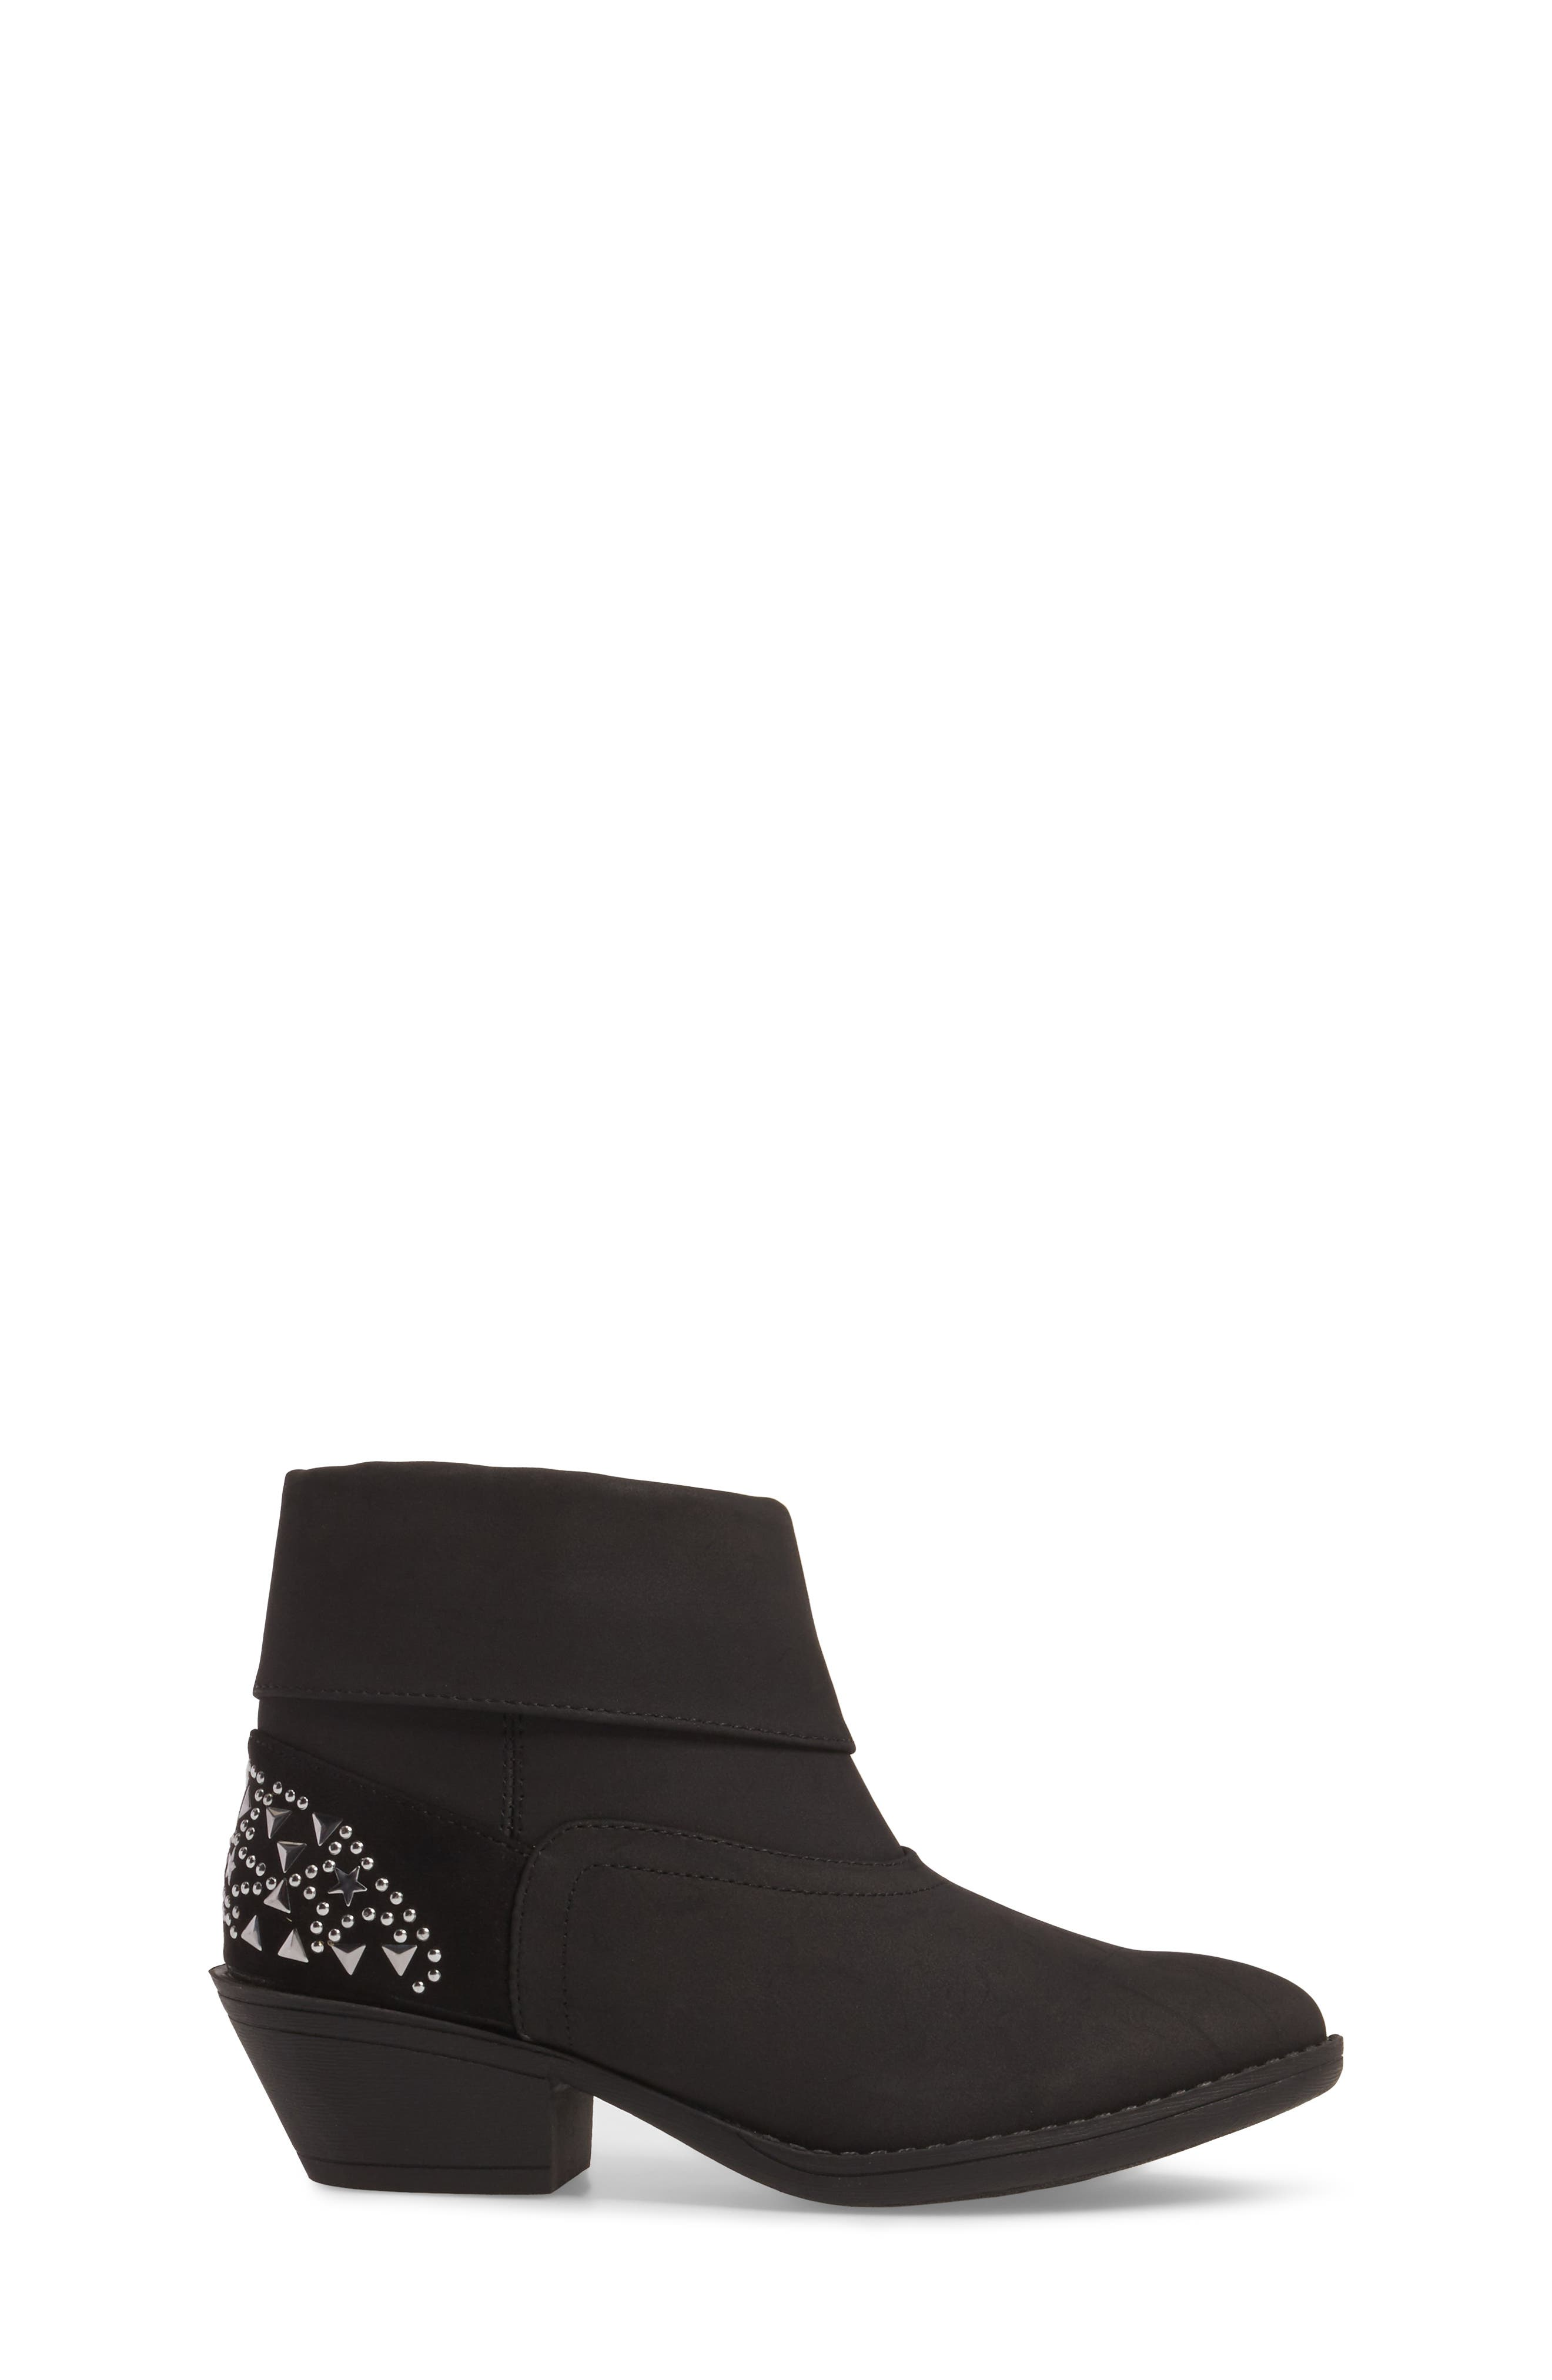 Taylor Star Bootie,                             Alternate thumbnail 3, color,                             001